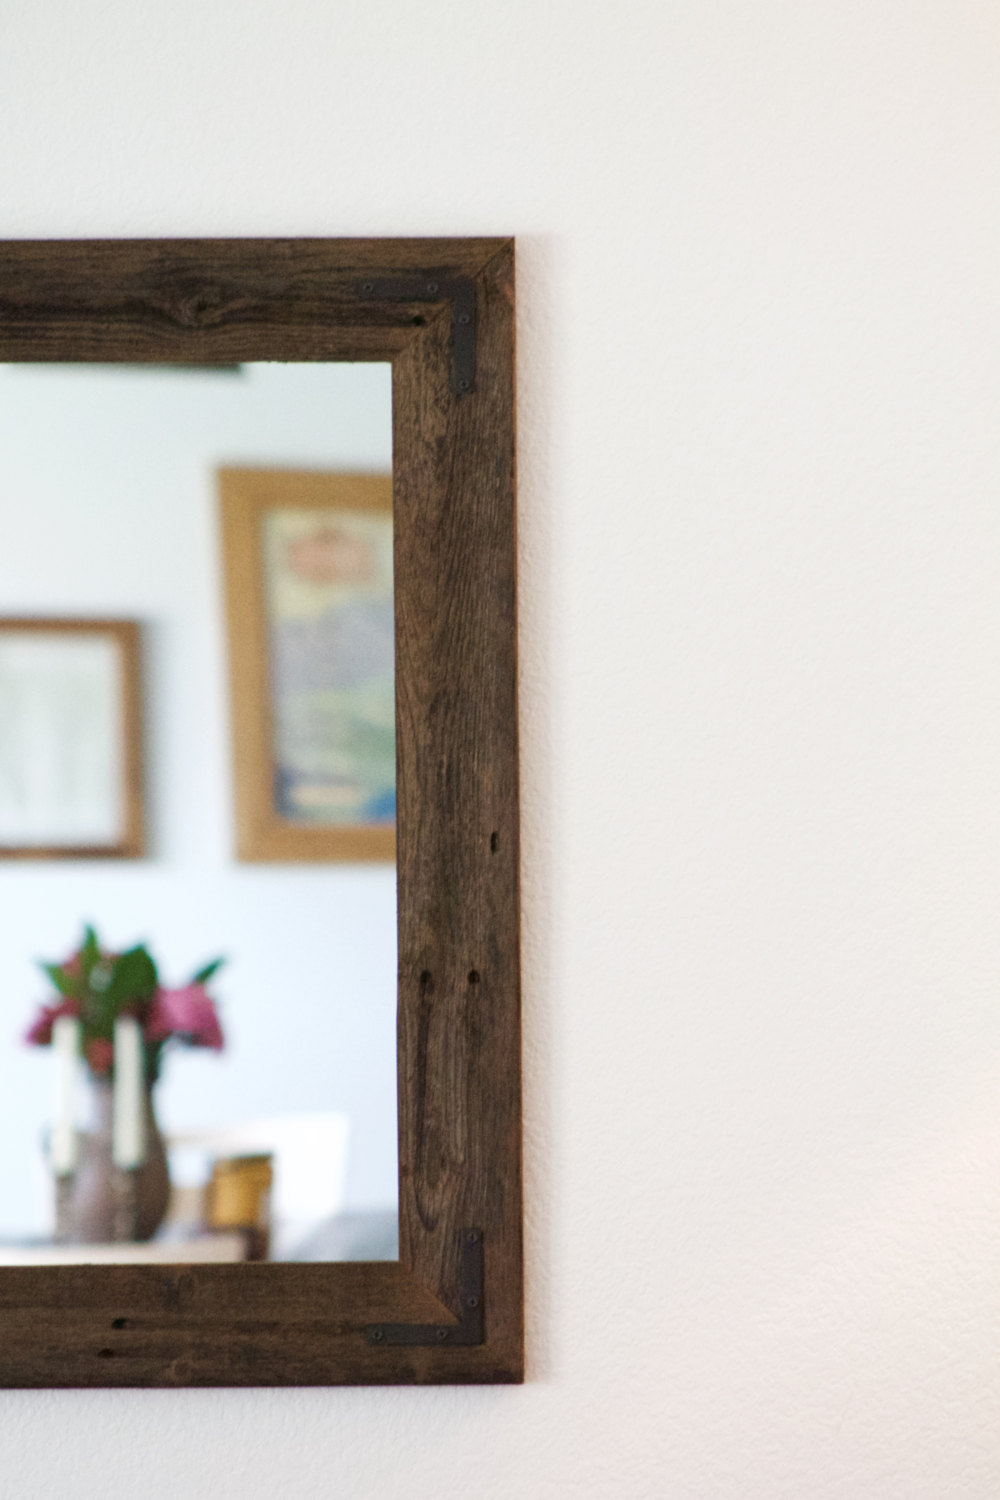 Oak Framed Bathroom Mirror | Reclaimed Wood Mirror | Circle Mirror Wall Decor